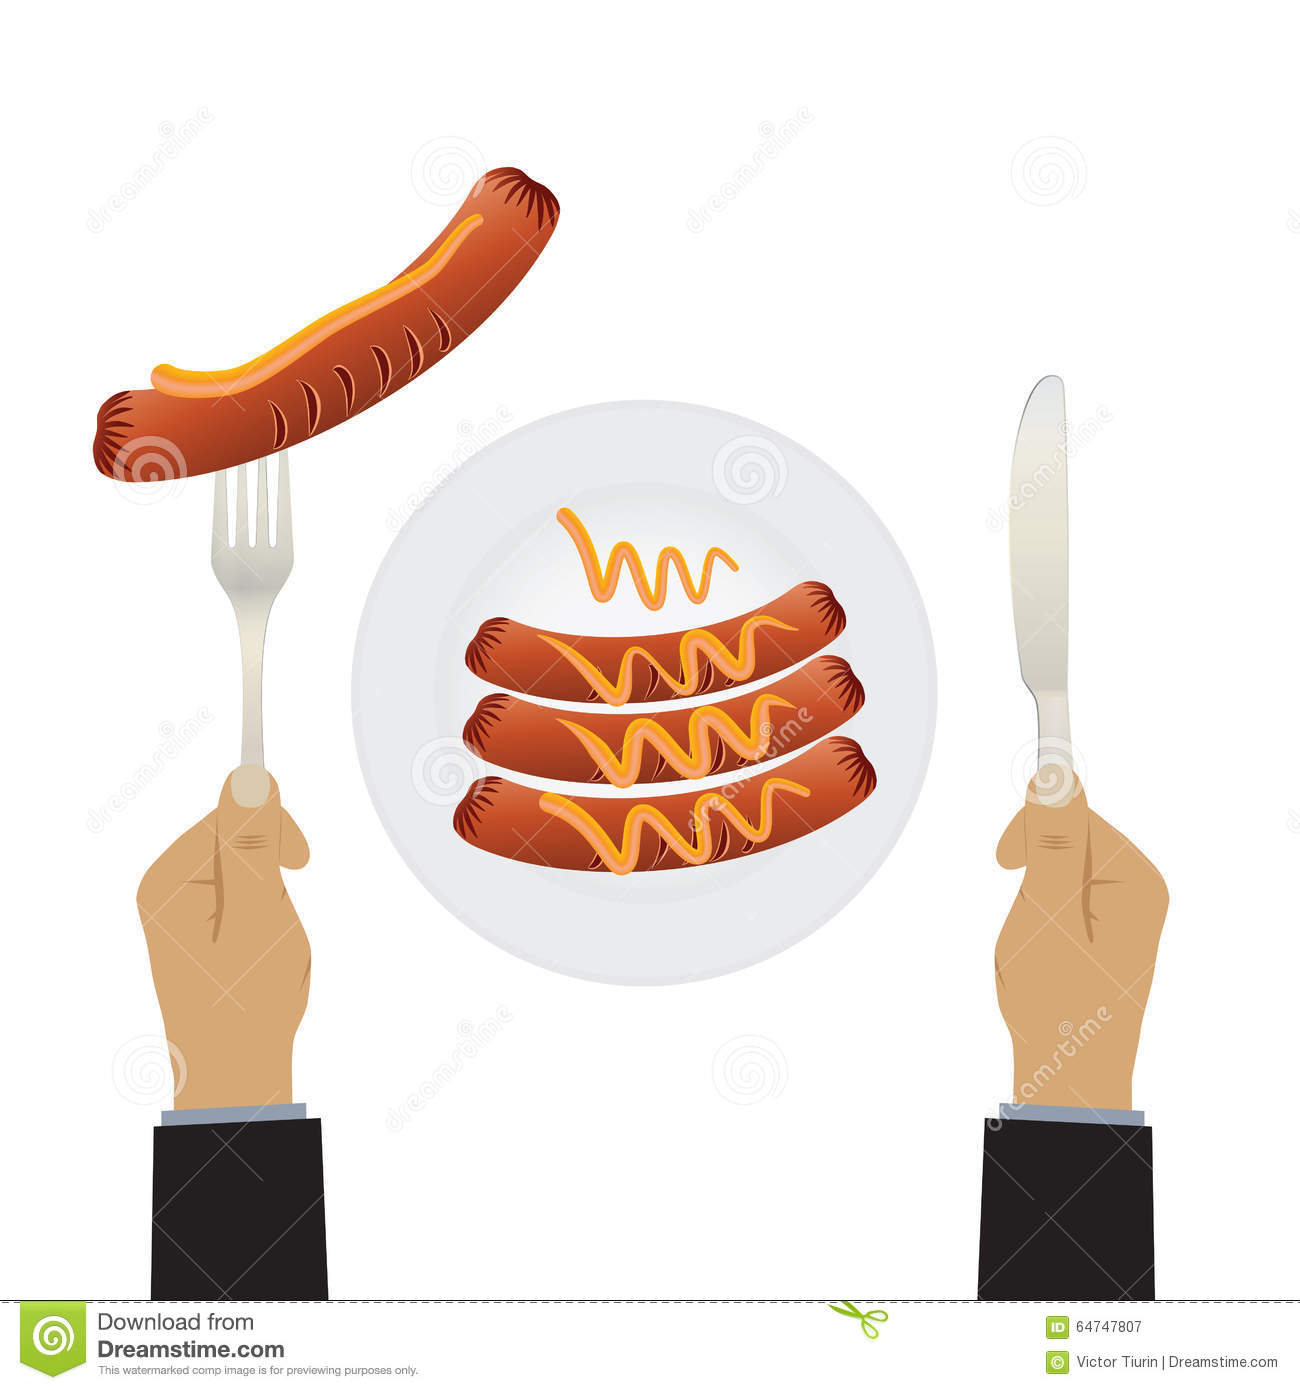 Hand with a knife and sausages on a plate.